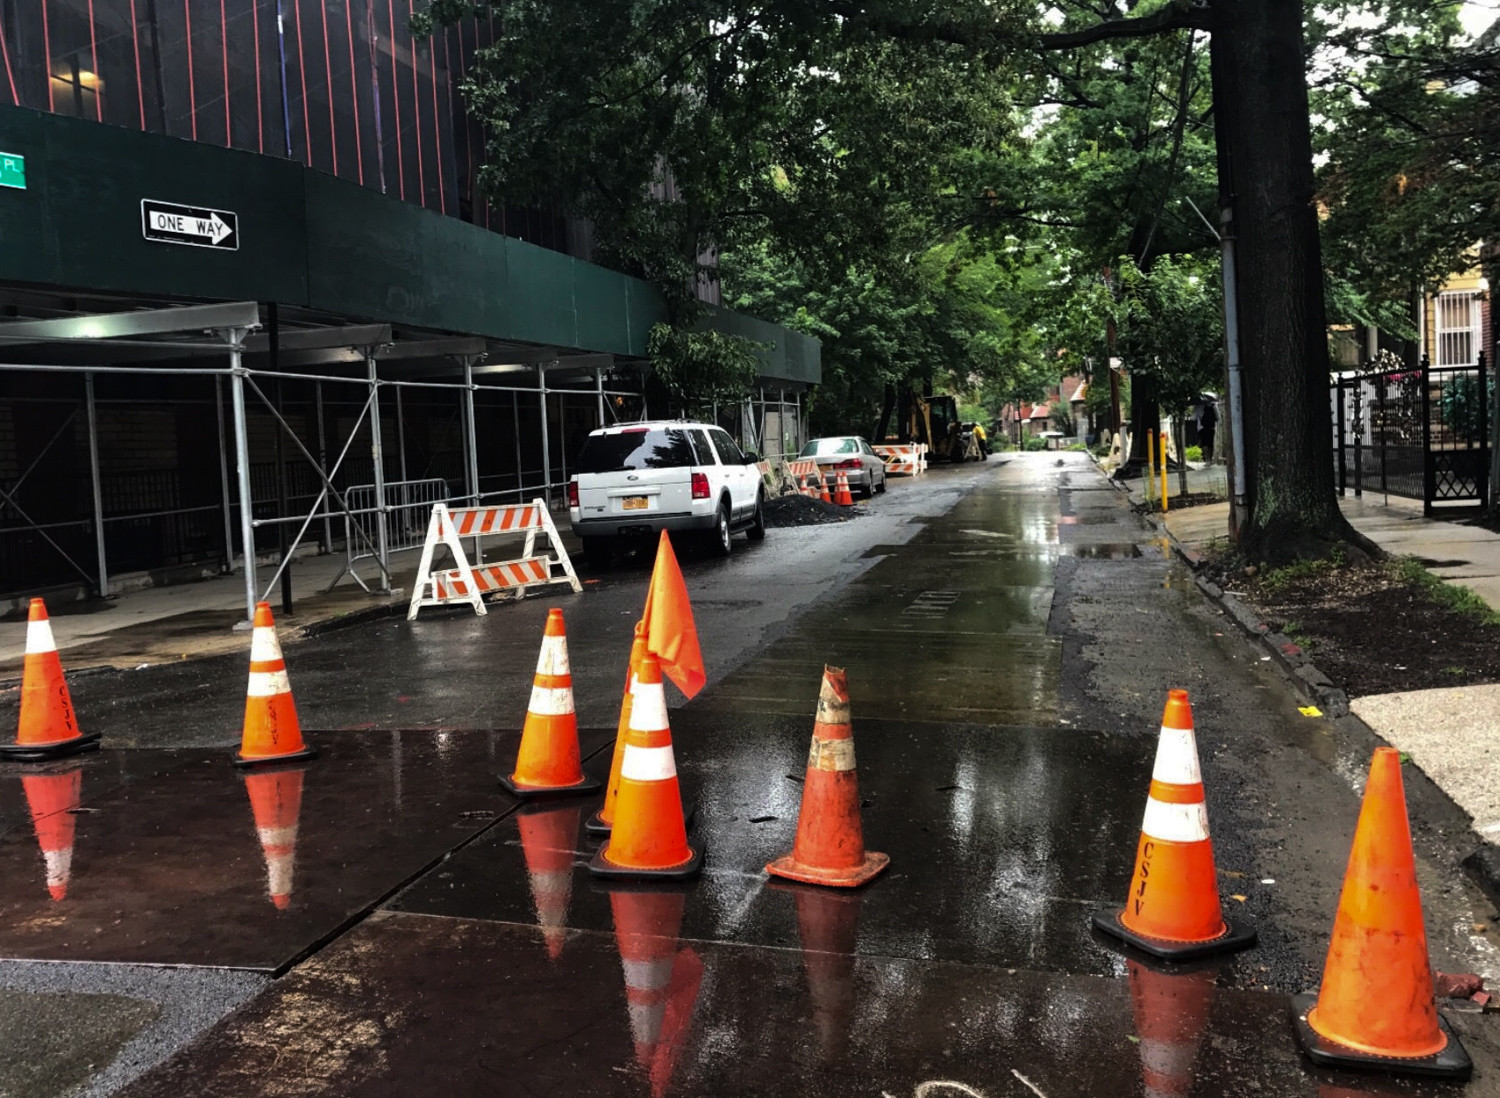 While Con Edison considers its repair work vital, residents in Community Board 8 have complained of unannounced street closures that affect traffic in the area.